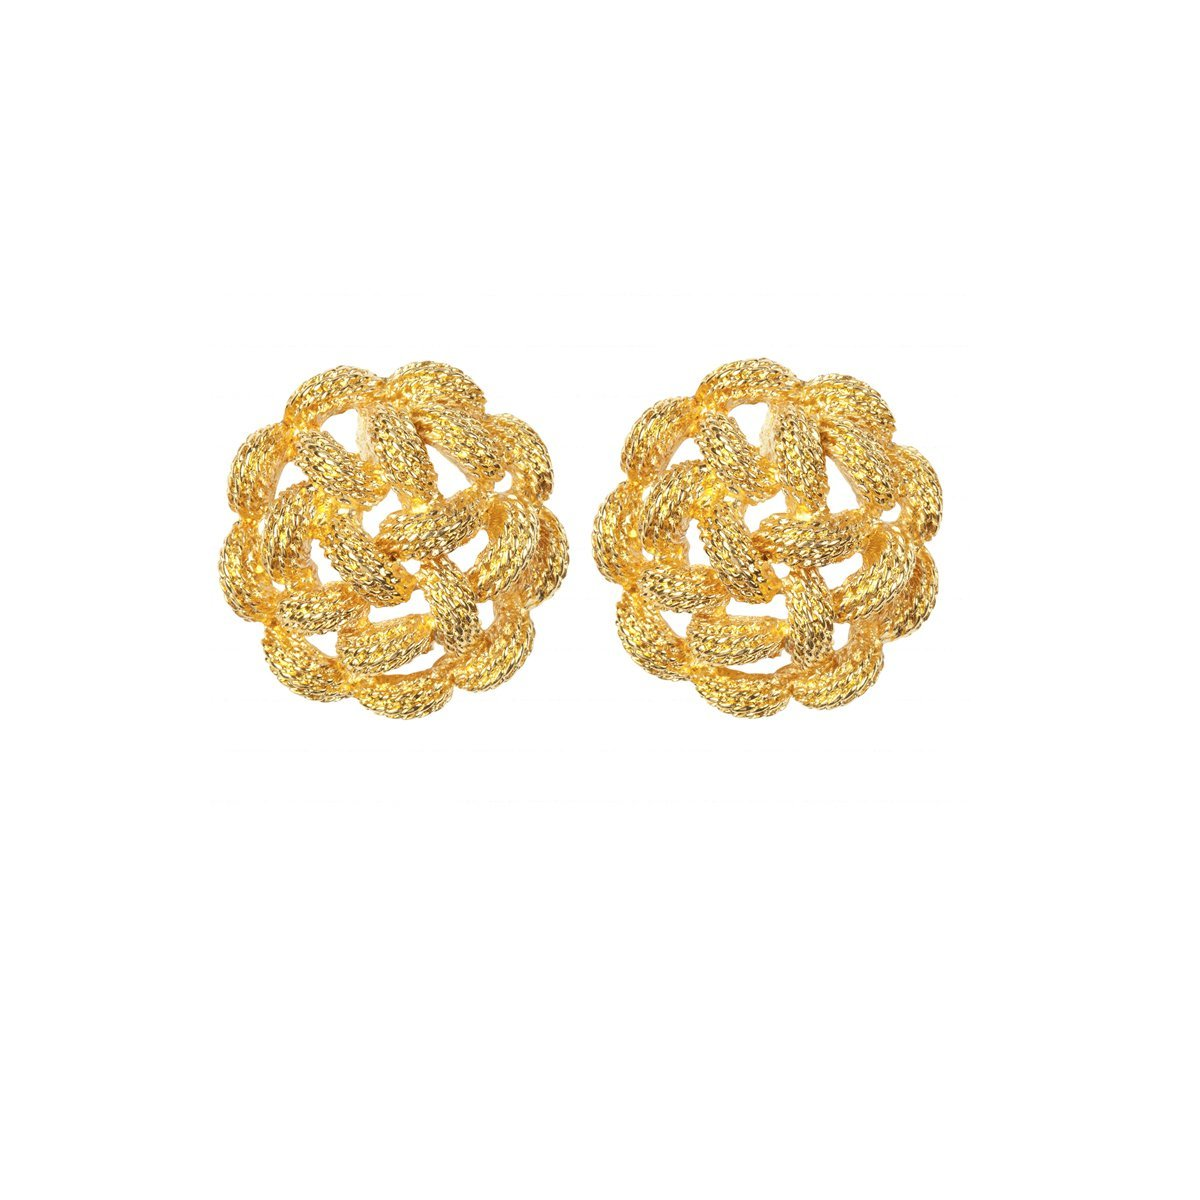 1970S VINTAGE MONET WOVEN ROUND EARRINGS